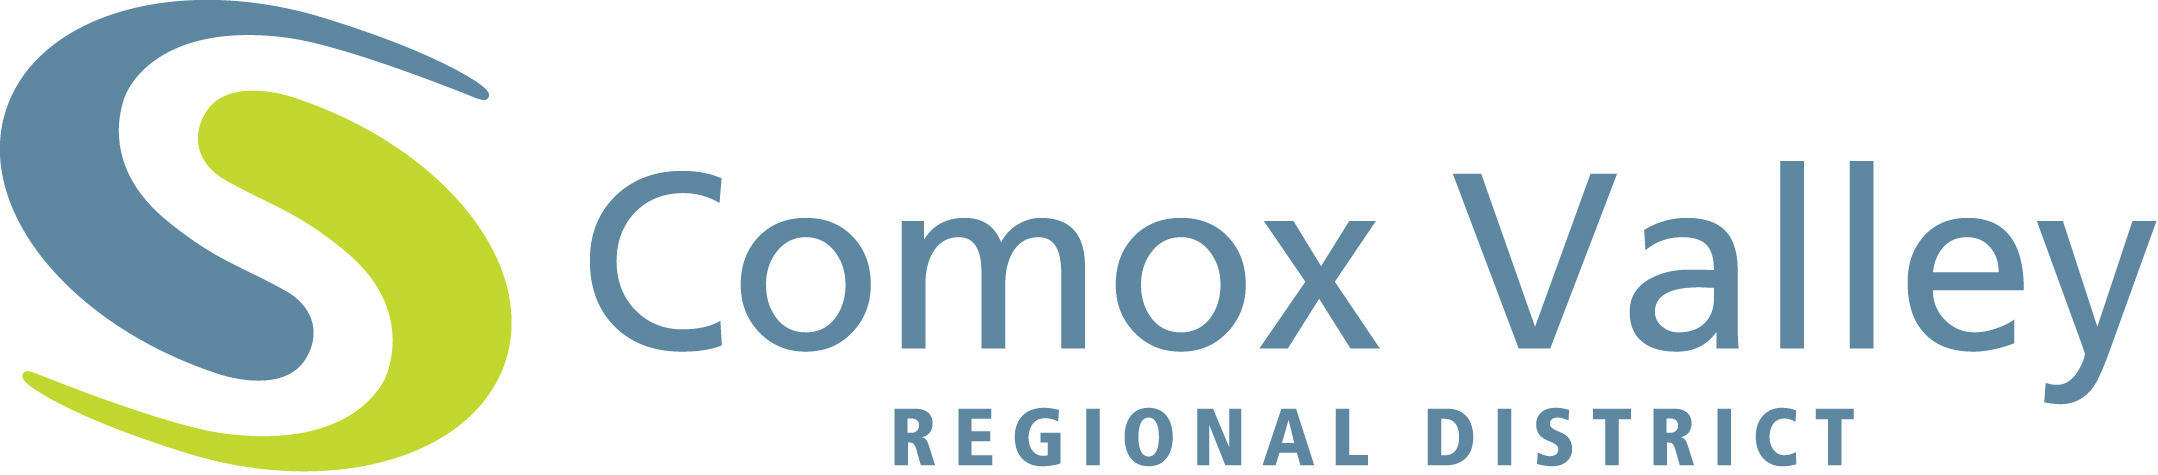 Comox Valley Regional District logo